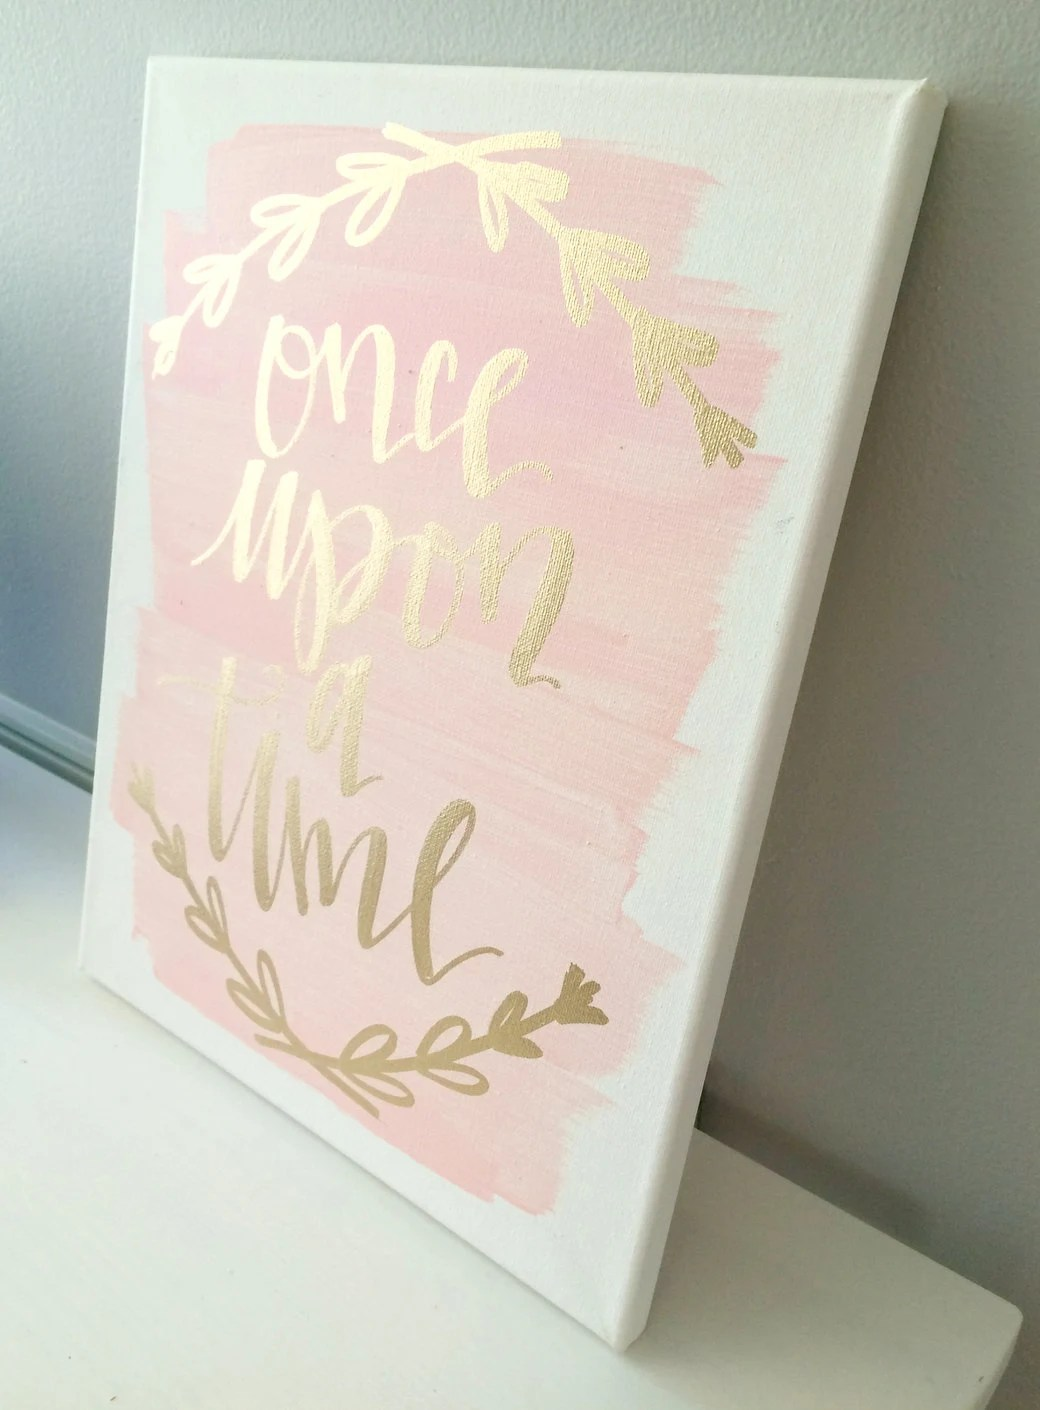 Pale Pink Wallpaper For Girl Nursery Once Upon A Time 11x14 Canvas Sign Wedding Decor Girls Room